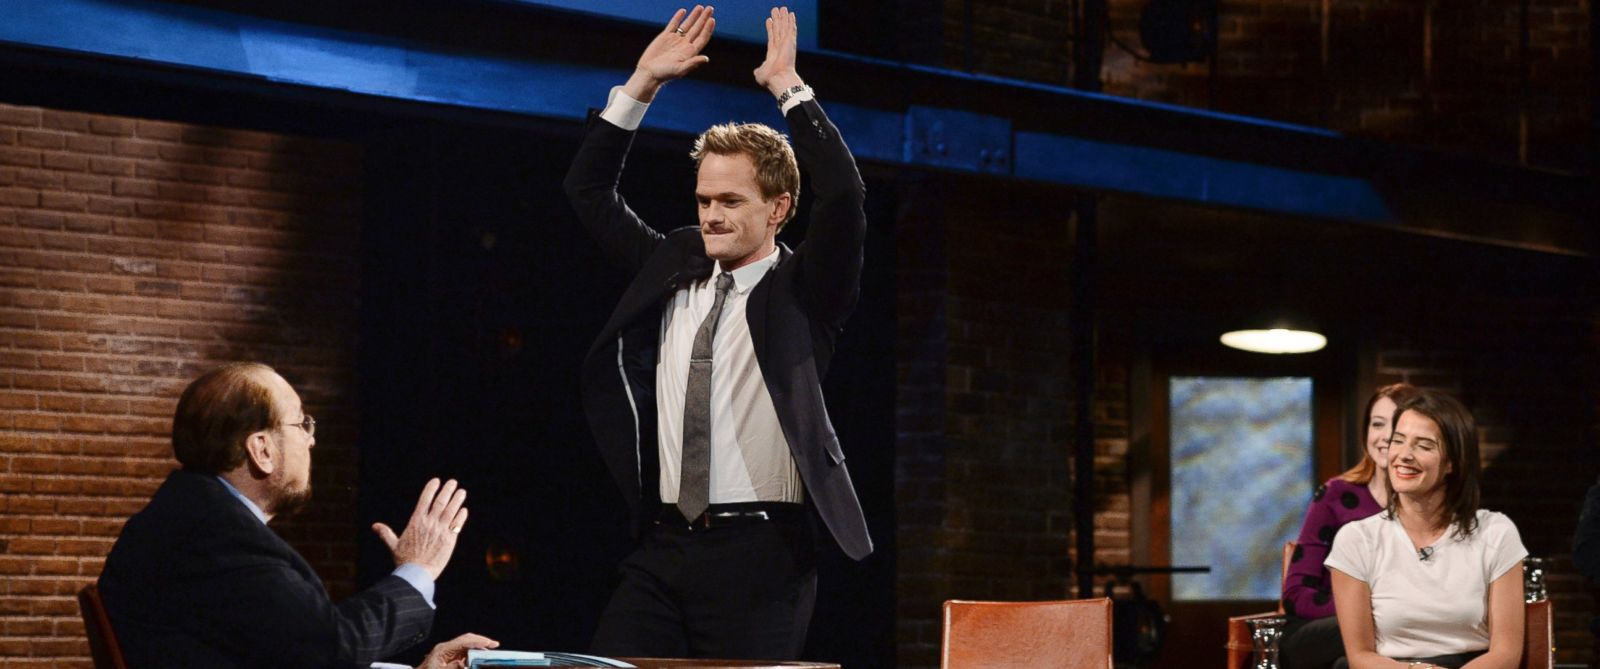 """PHOTO: The cast of """"How I Met Your Mother"""" is pictured during a taping of """"Inside the Actors Studio,"""" from left, host James Lipton, Neil Patrick Harris, and Cobie Smulders."""